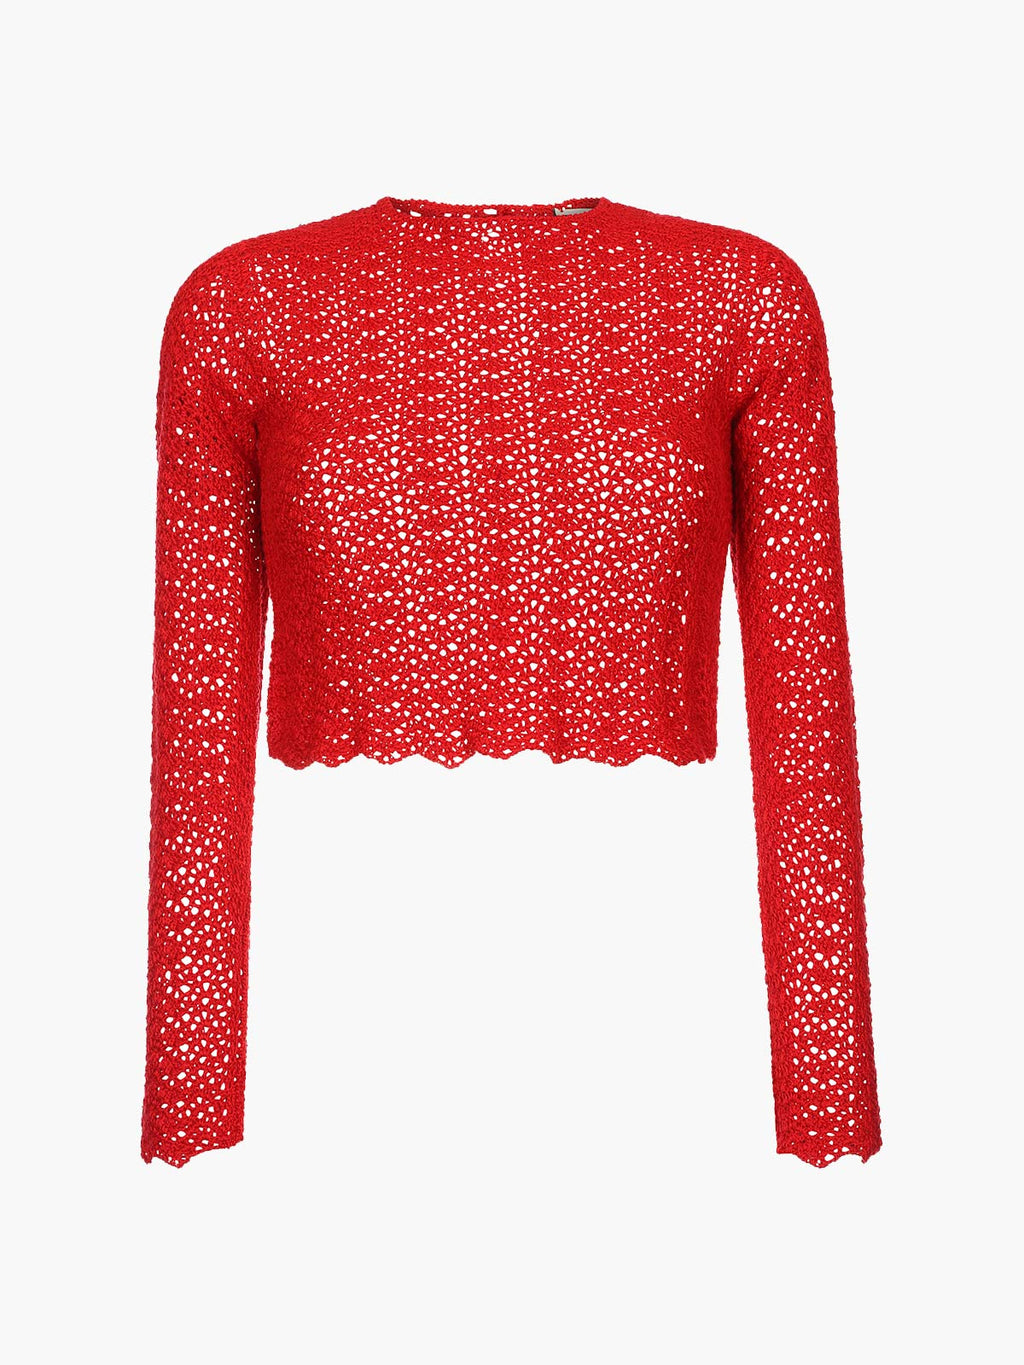 Mawi Crochet Top | Red